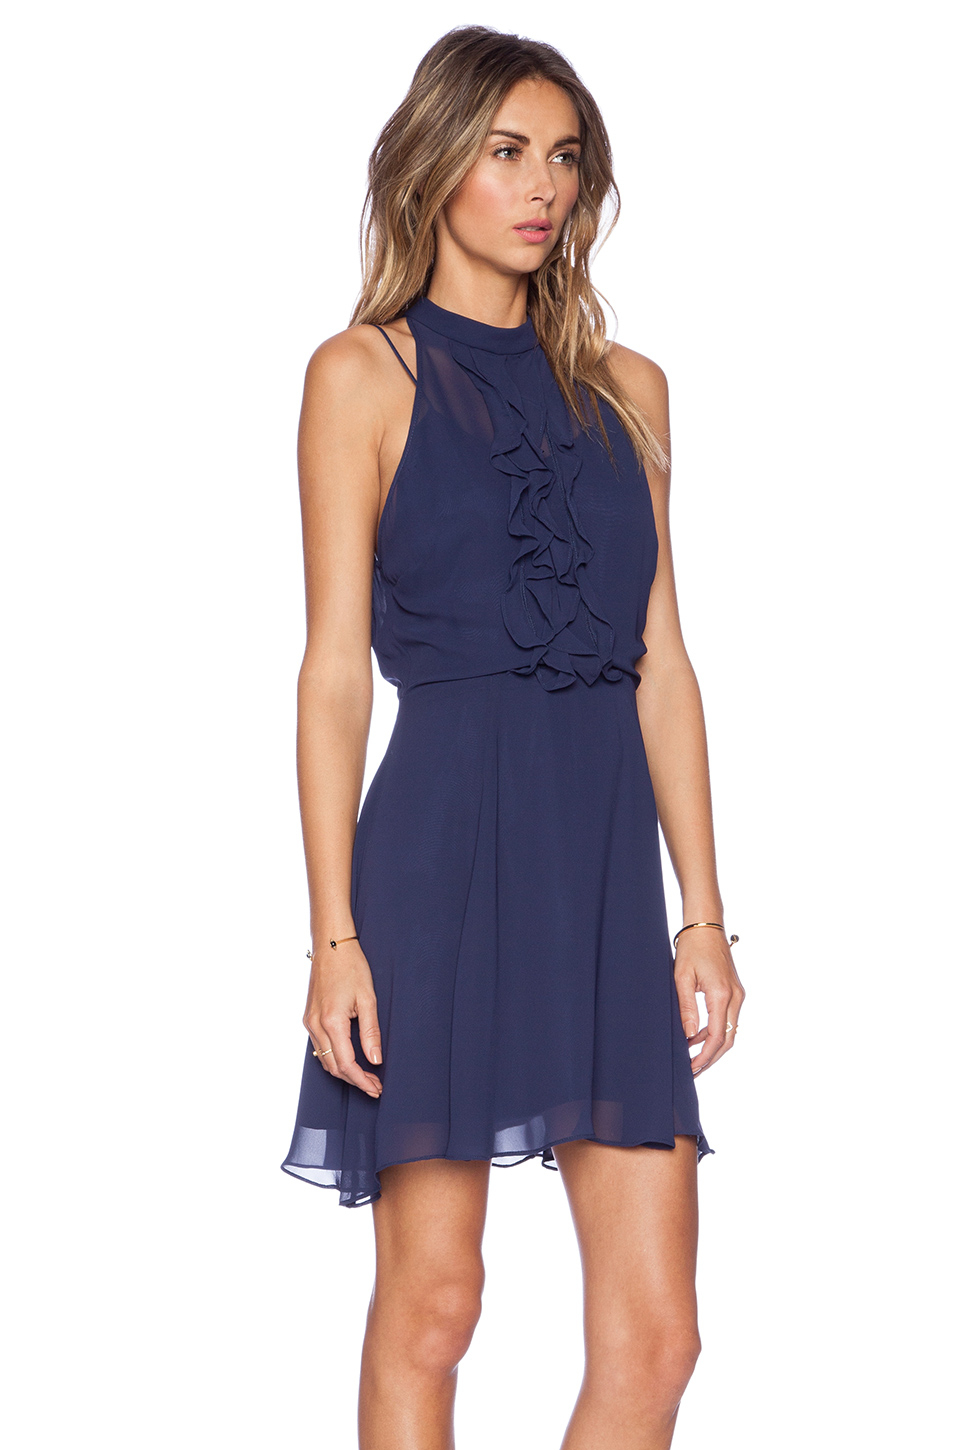 Bcbgeneration Ruffle Front Dress in Blue - Lyst